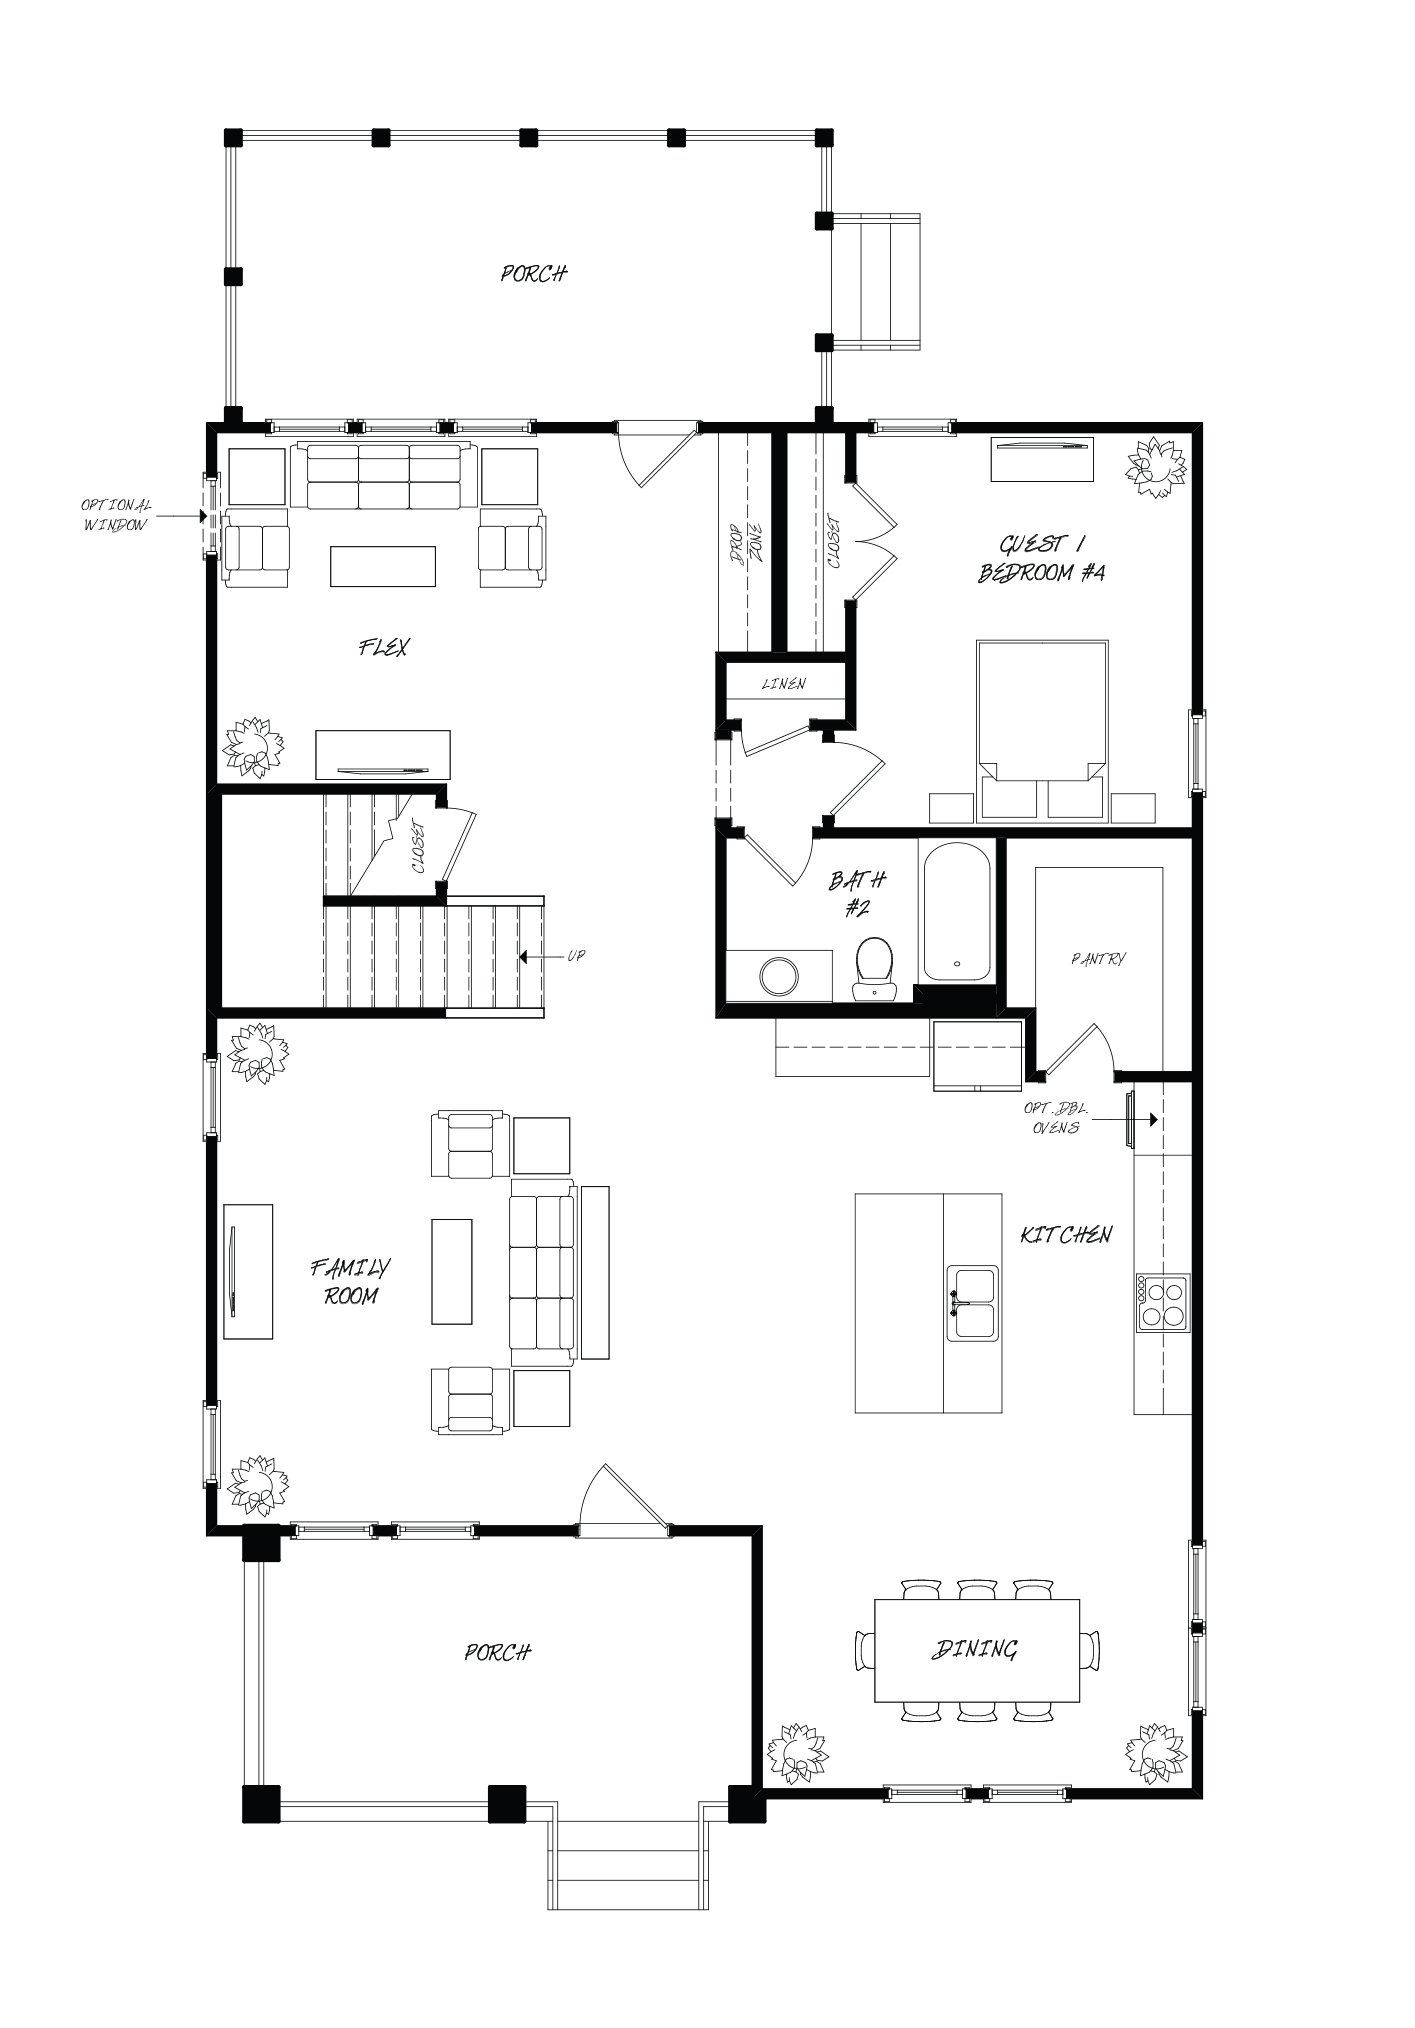 Quick Movein Homes Near Charleston 111 Nutmeg Way – Charleston Homes Floor Plans